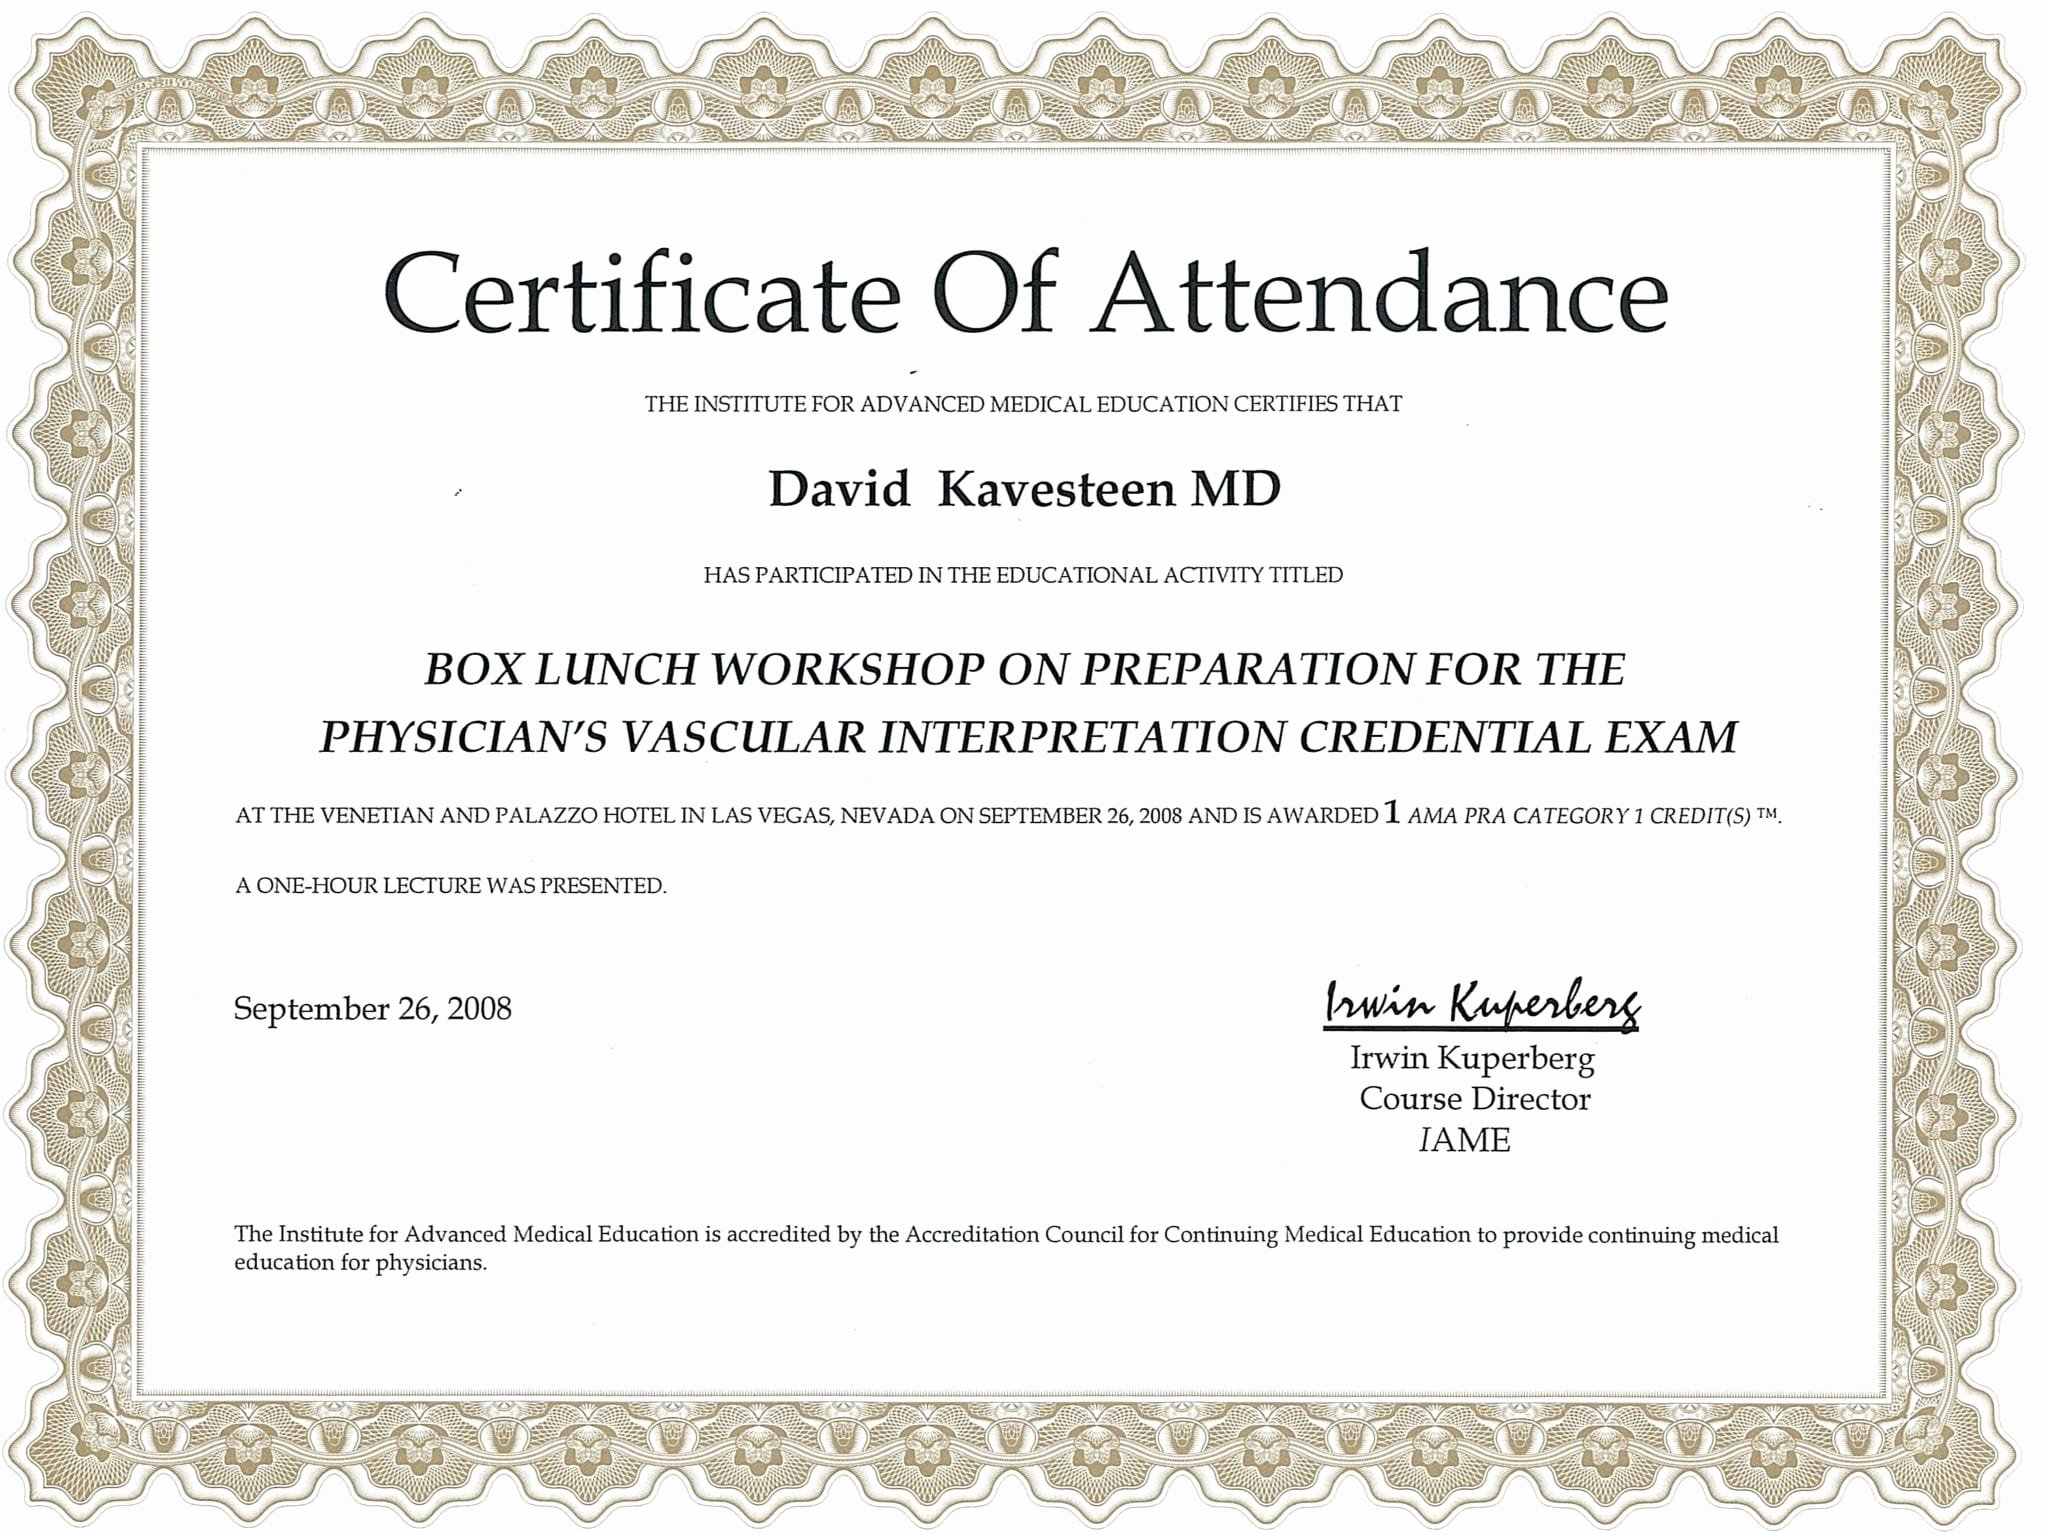 Certificate Of attendance Template Luxury 5 Certificate Of attendance Templates Word Excel Templates